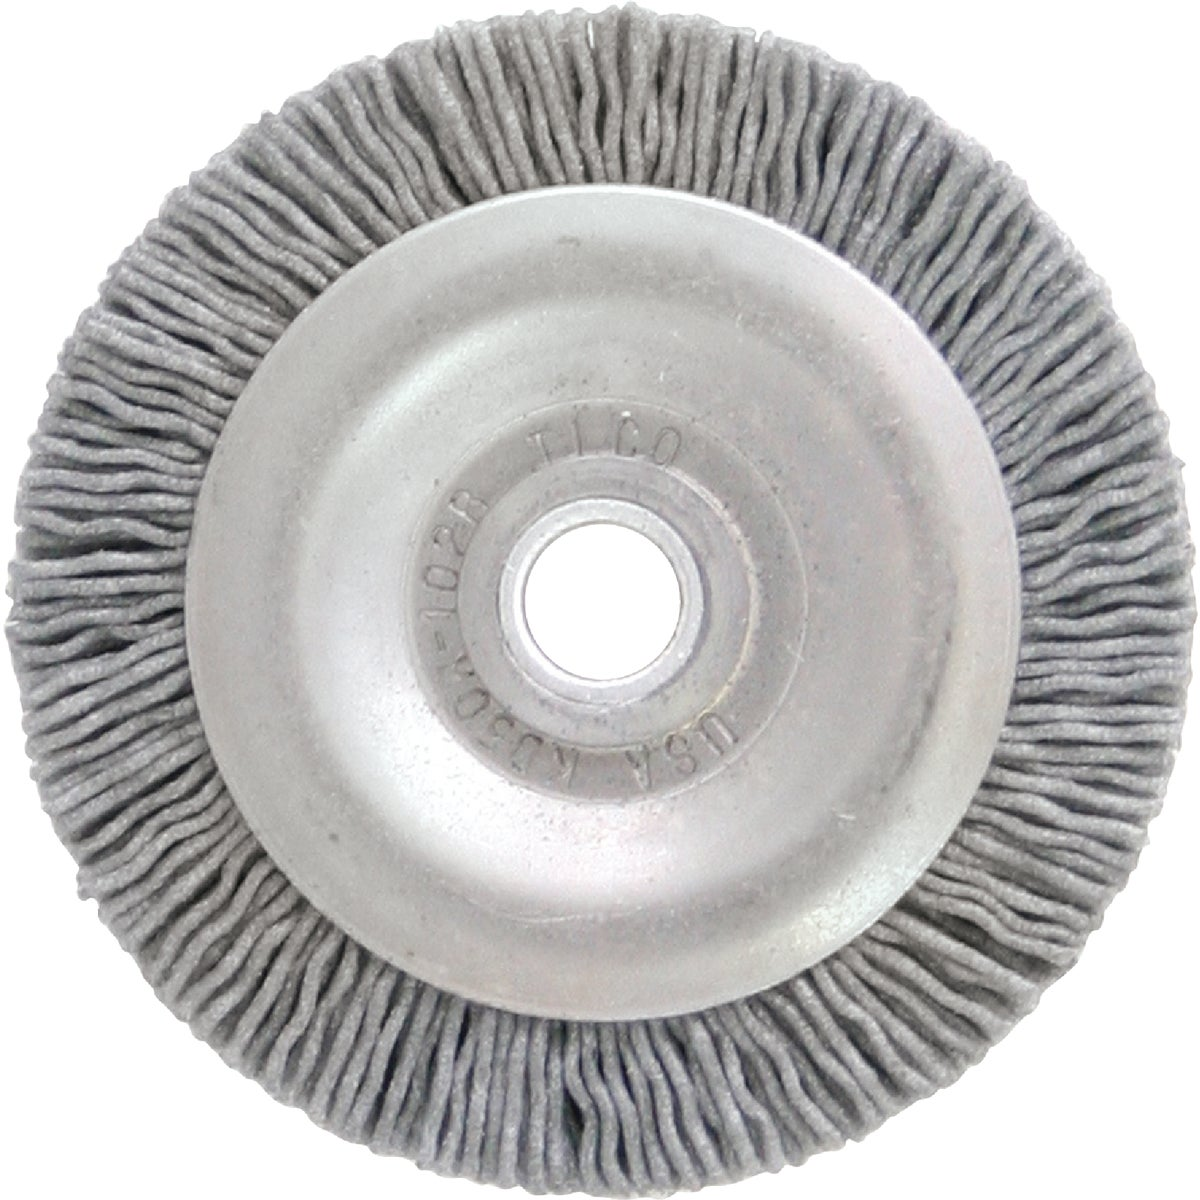 DEBURRING BRUSH - KD50A-102B by Ilco Corp